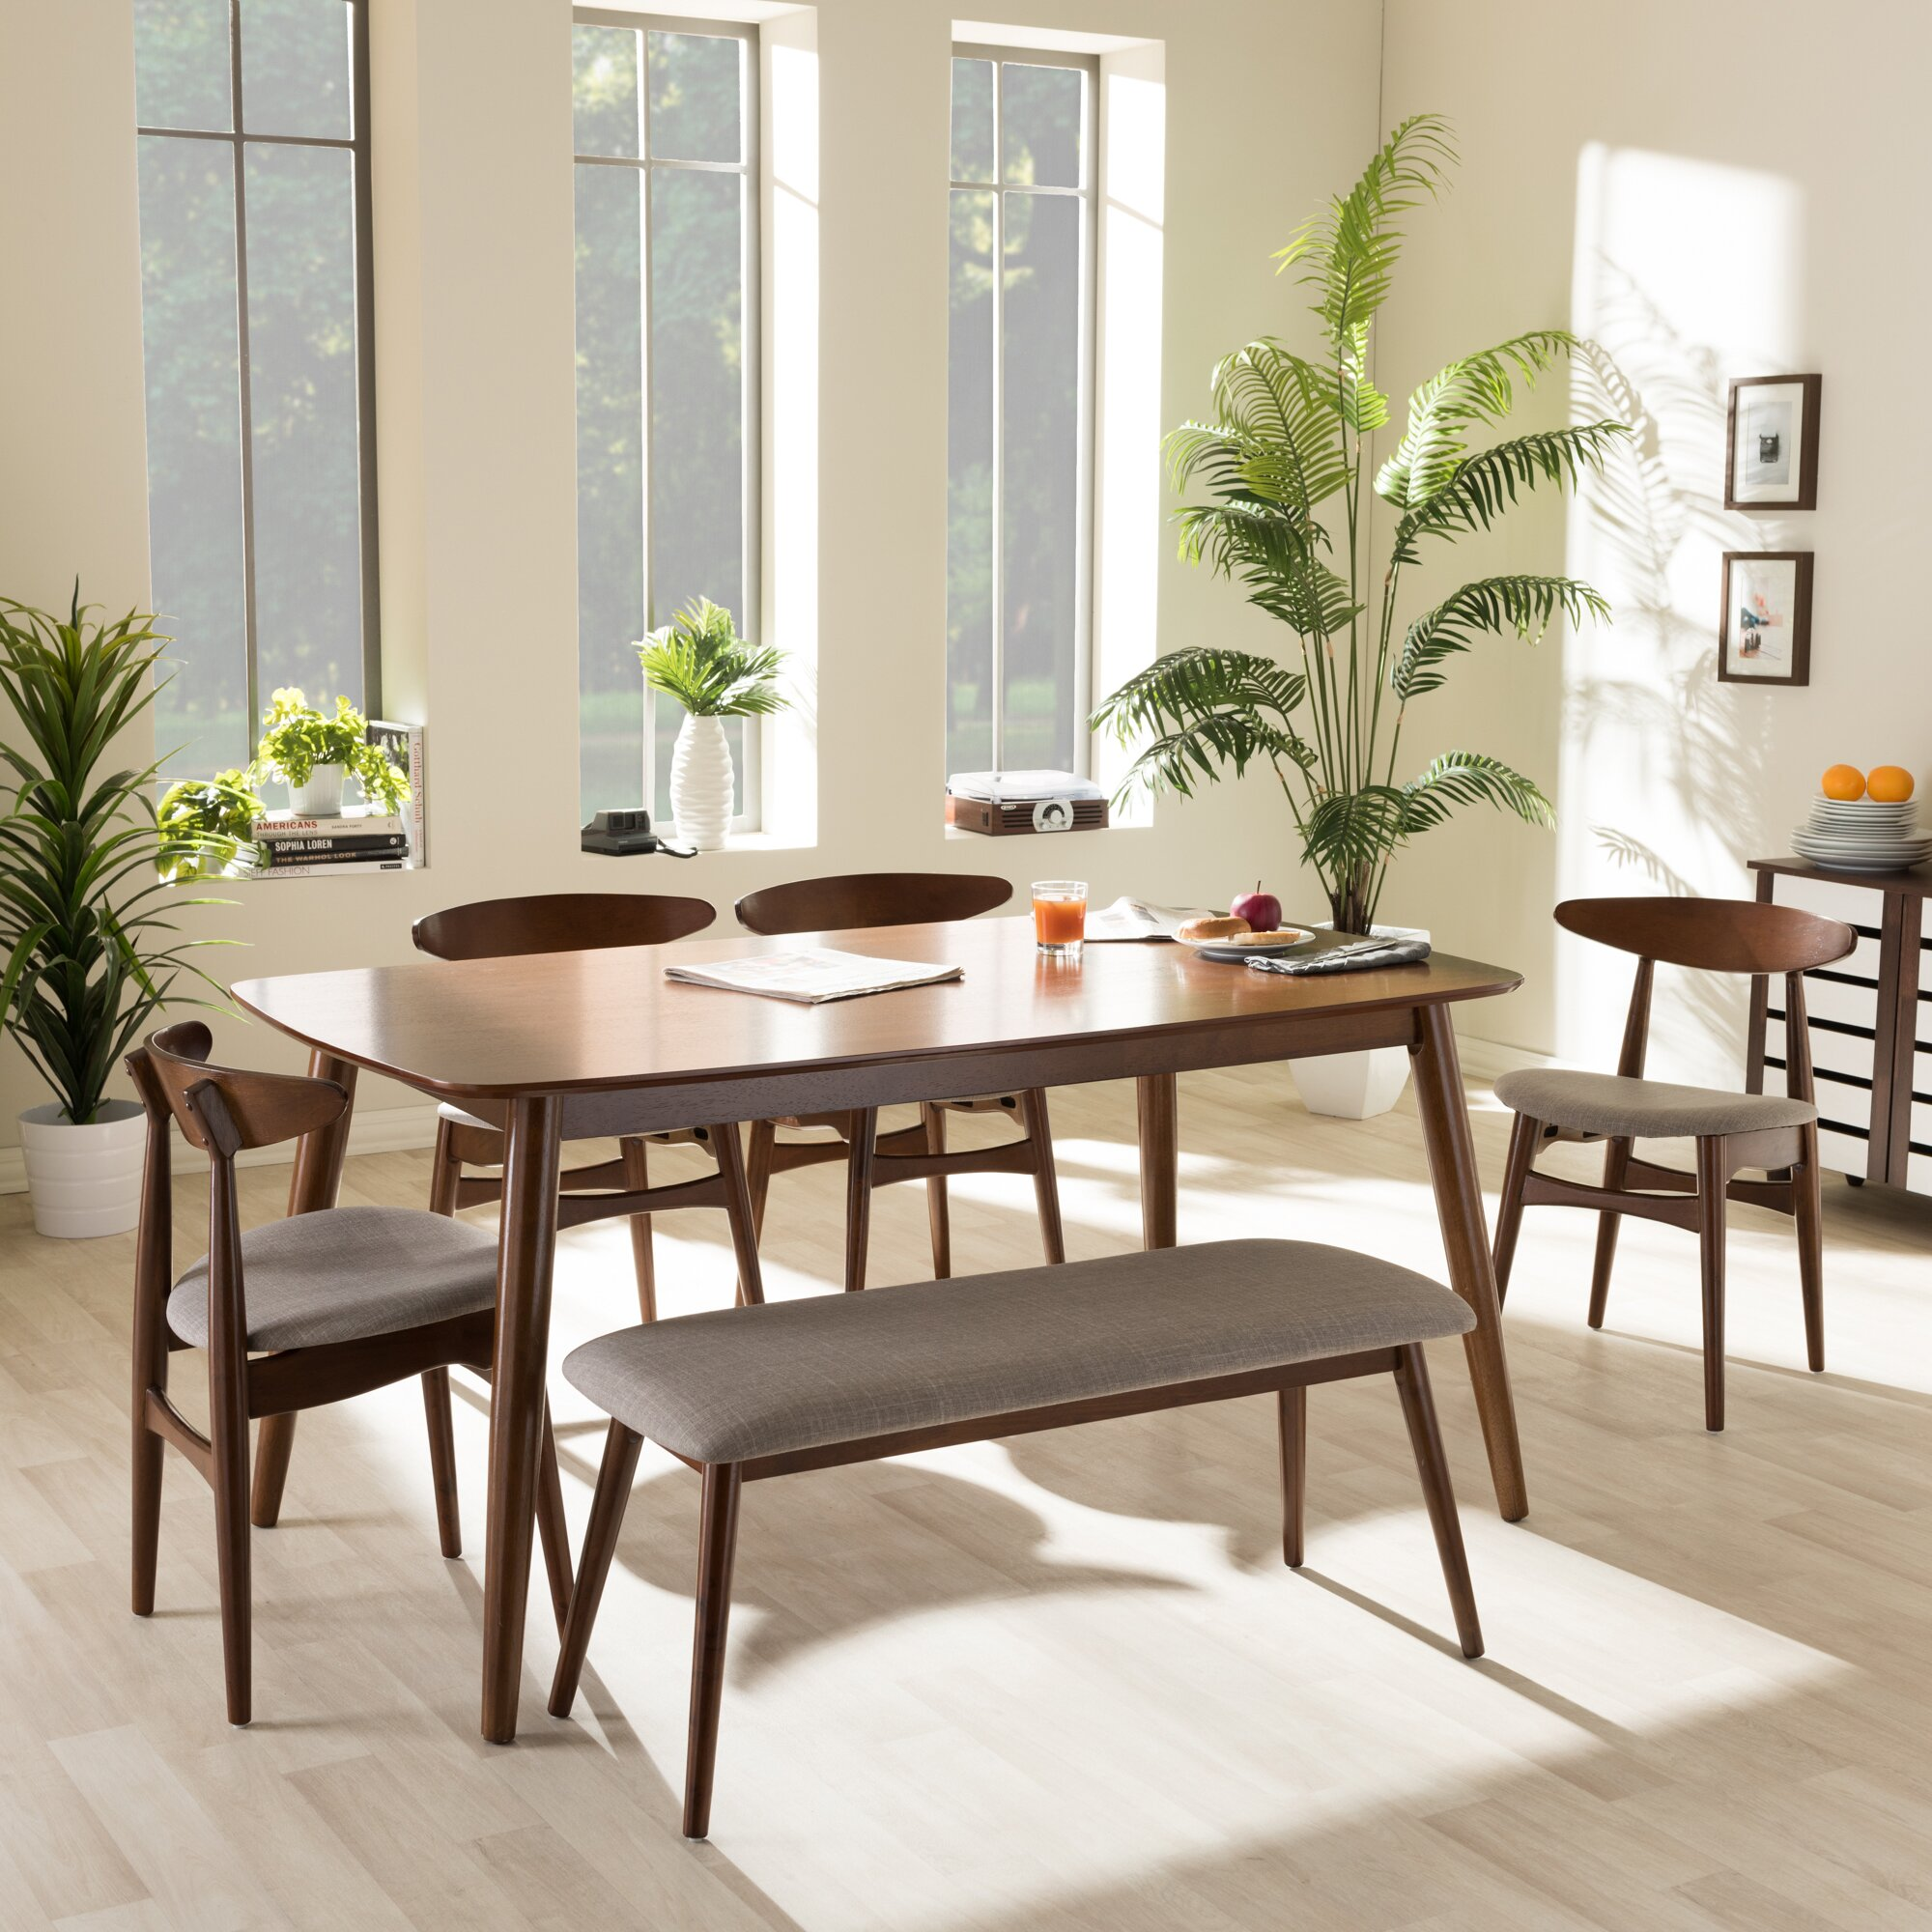 Wholesale Interiors Baxton Studio 6 Piece Dining Set